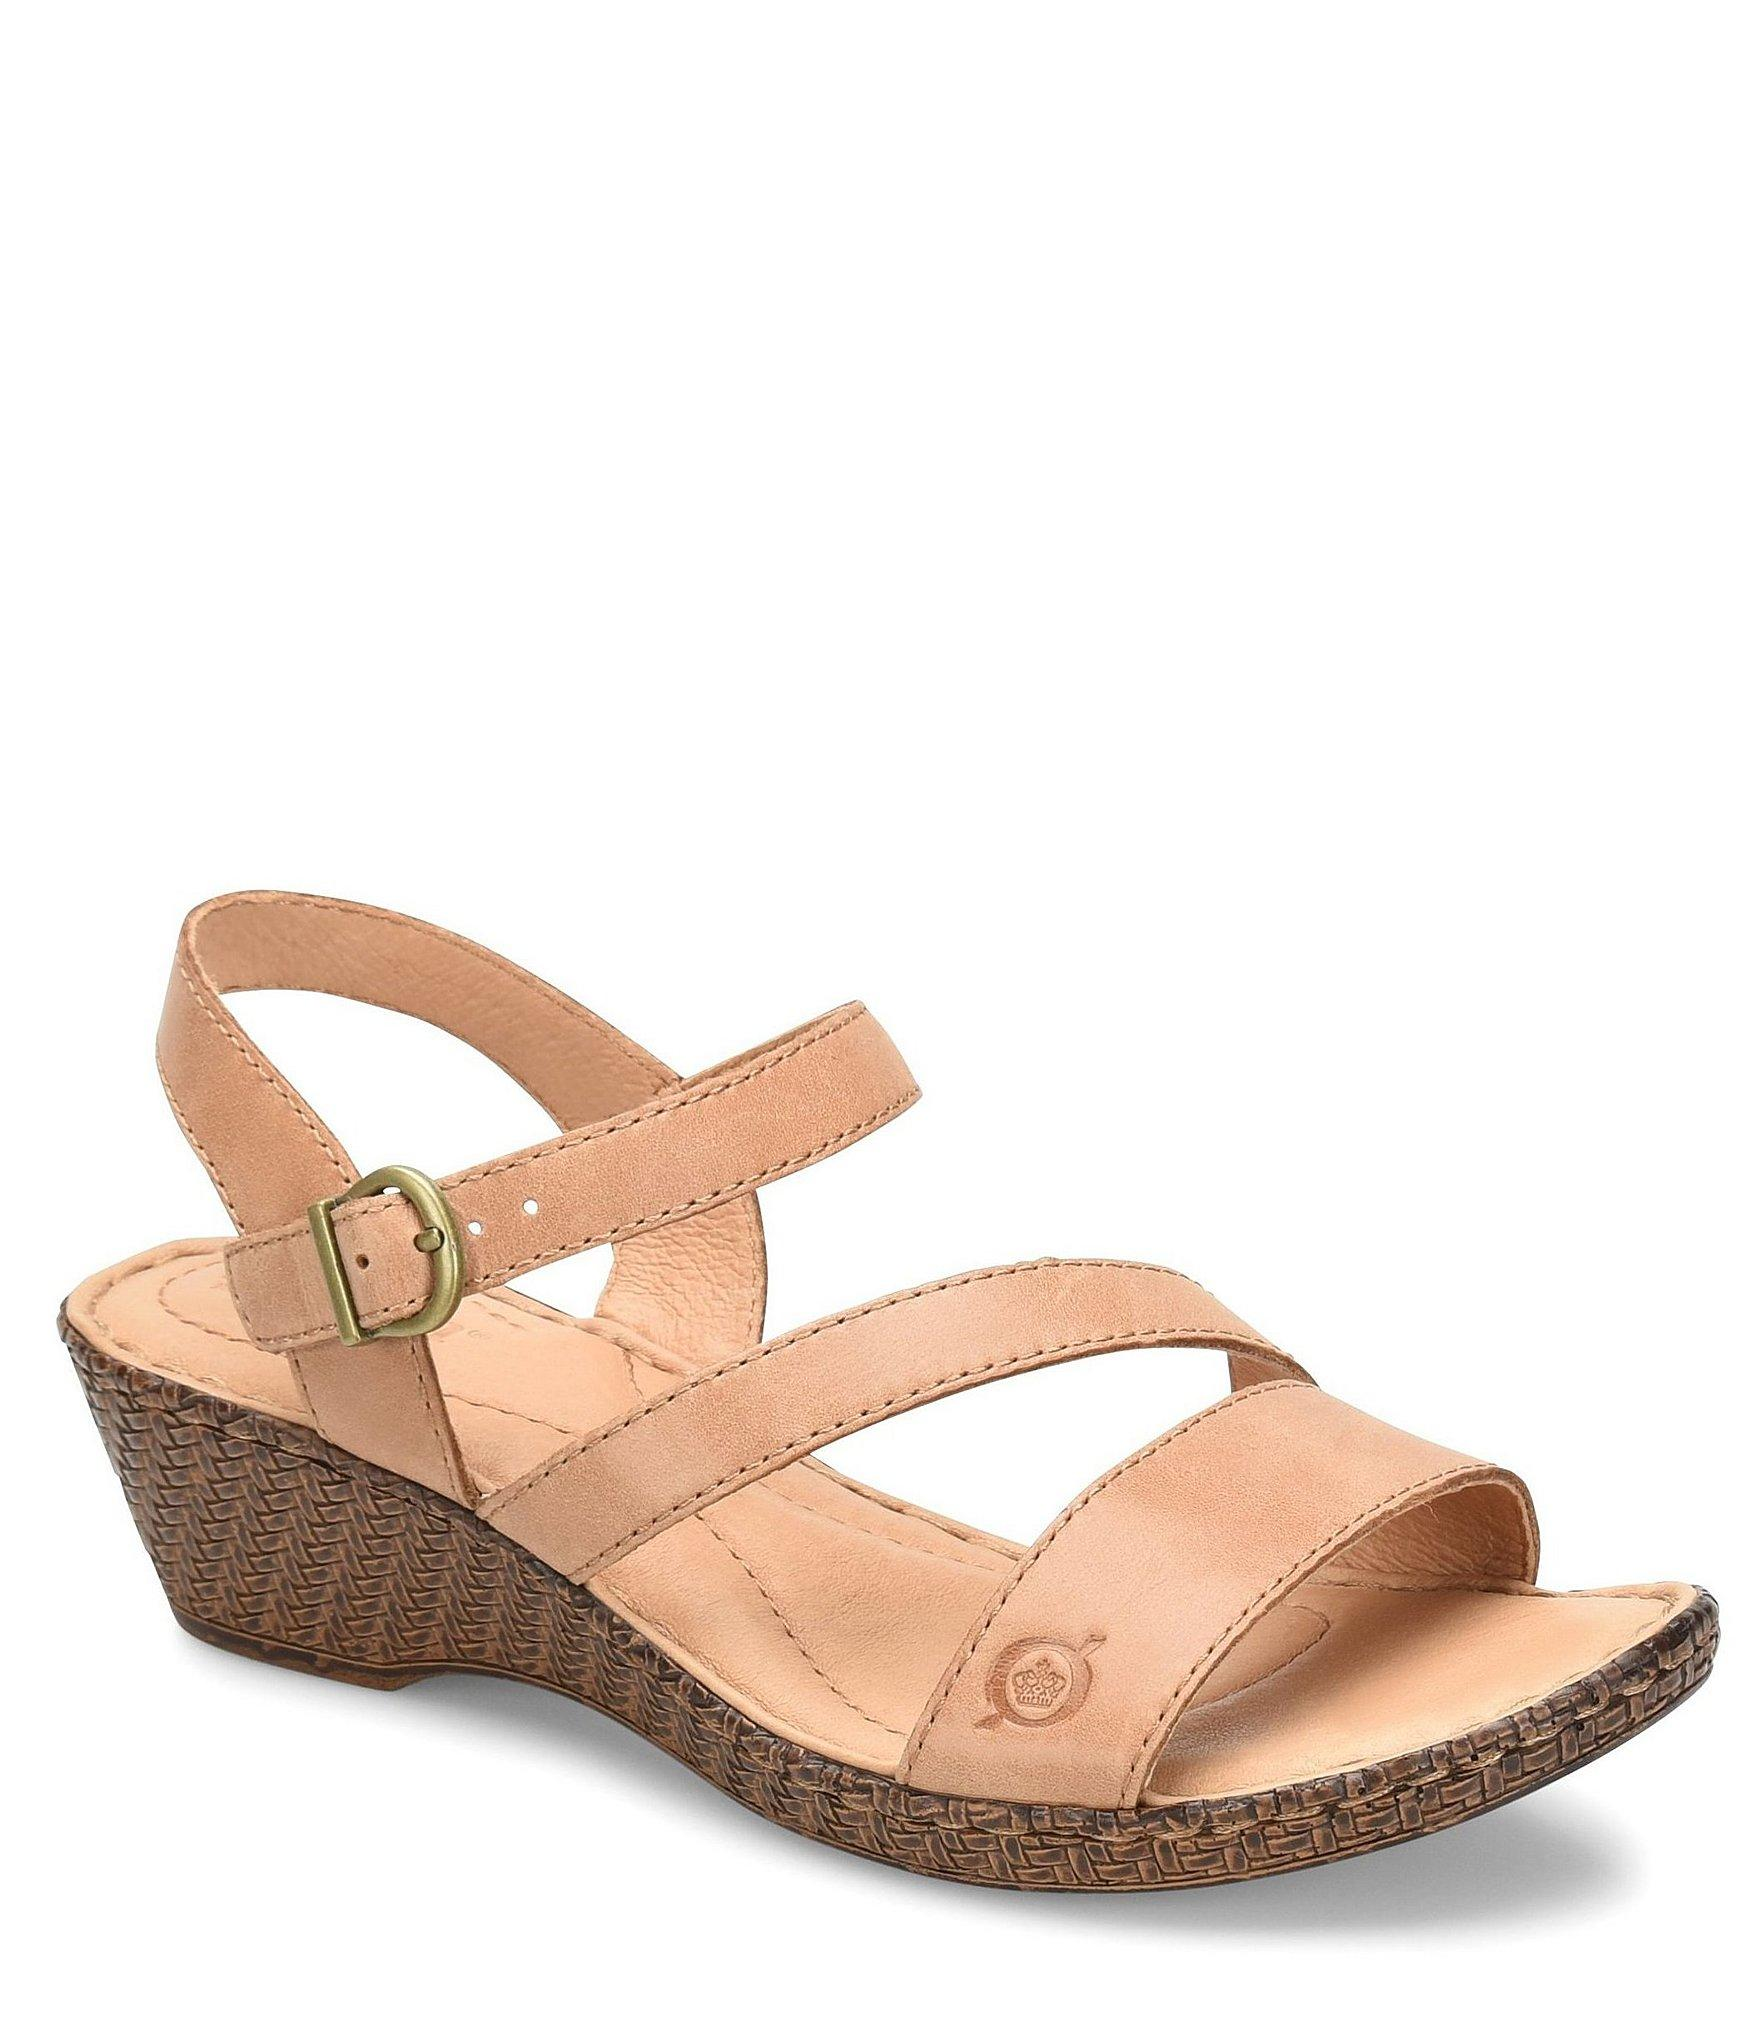 23601e509643 Lyst - Born Iemza Leather Wedge Sandals in Brown